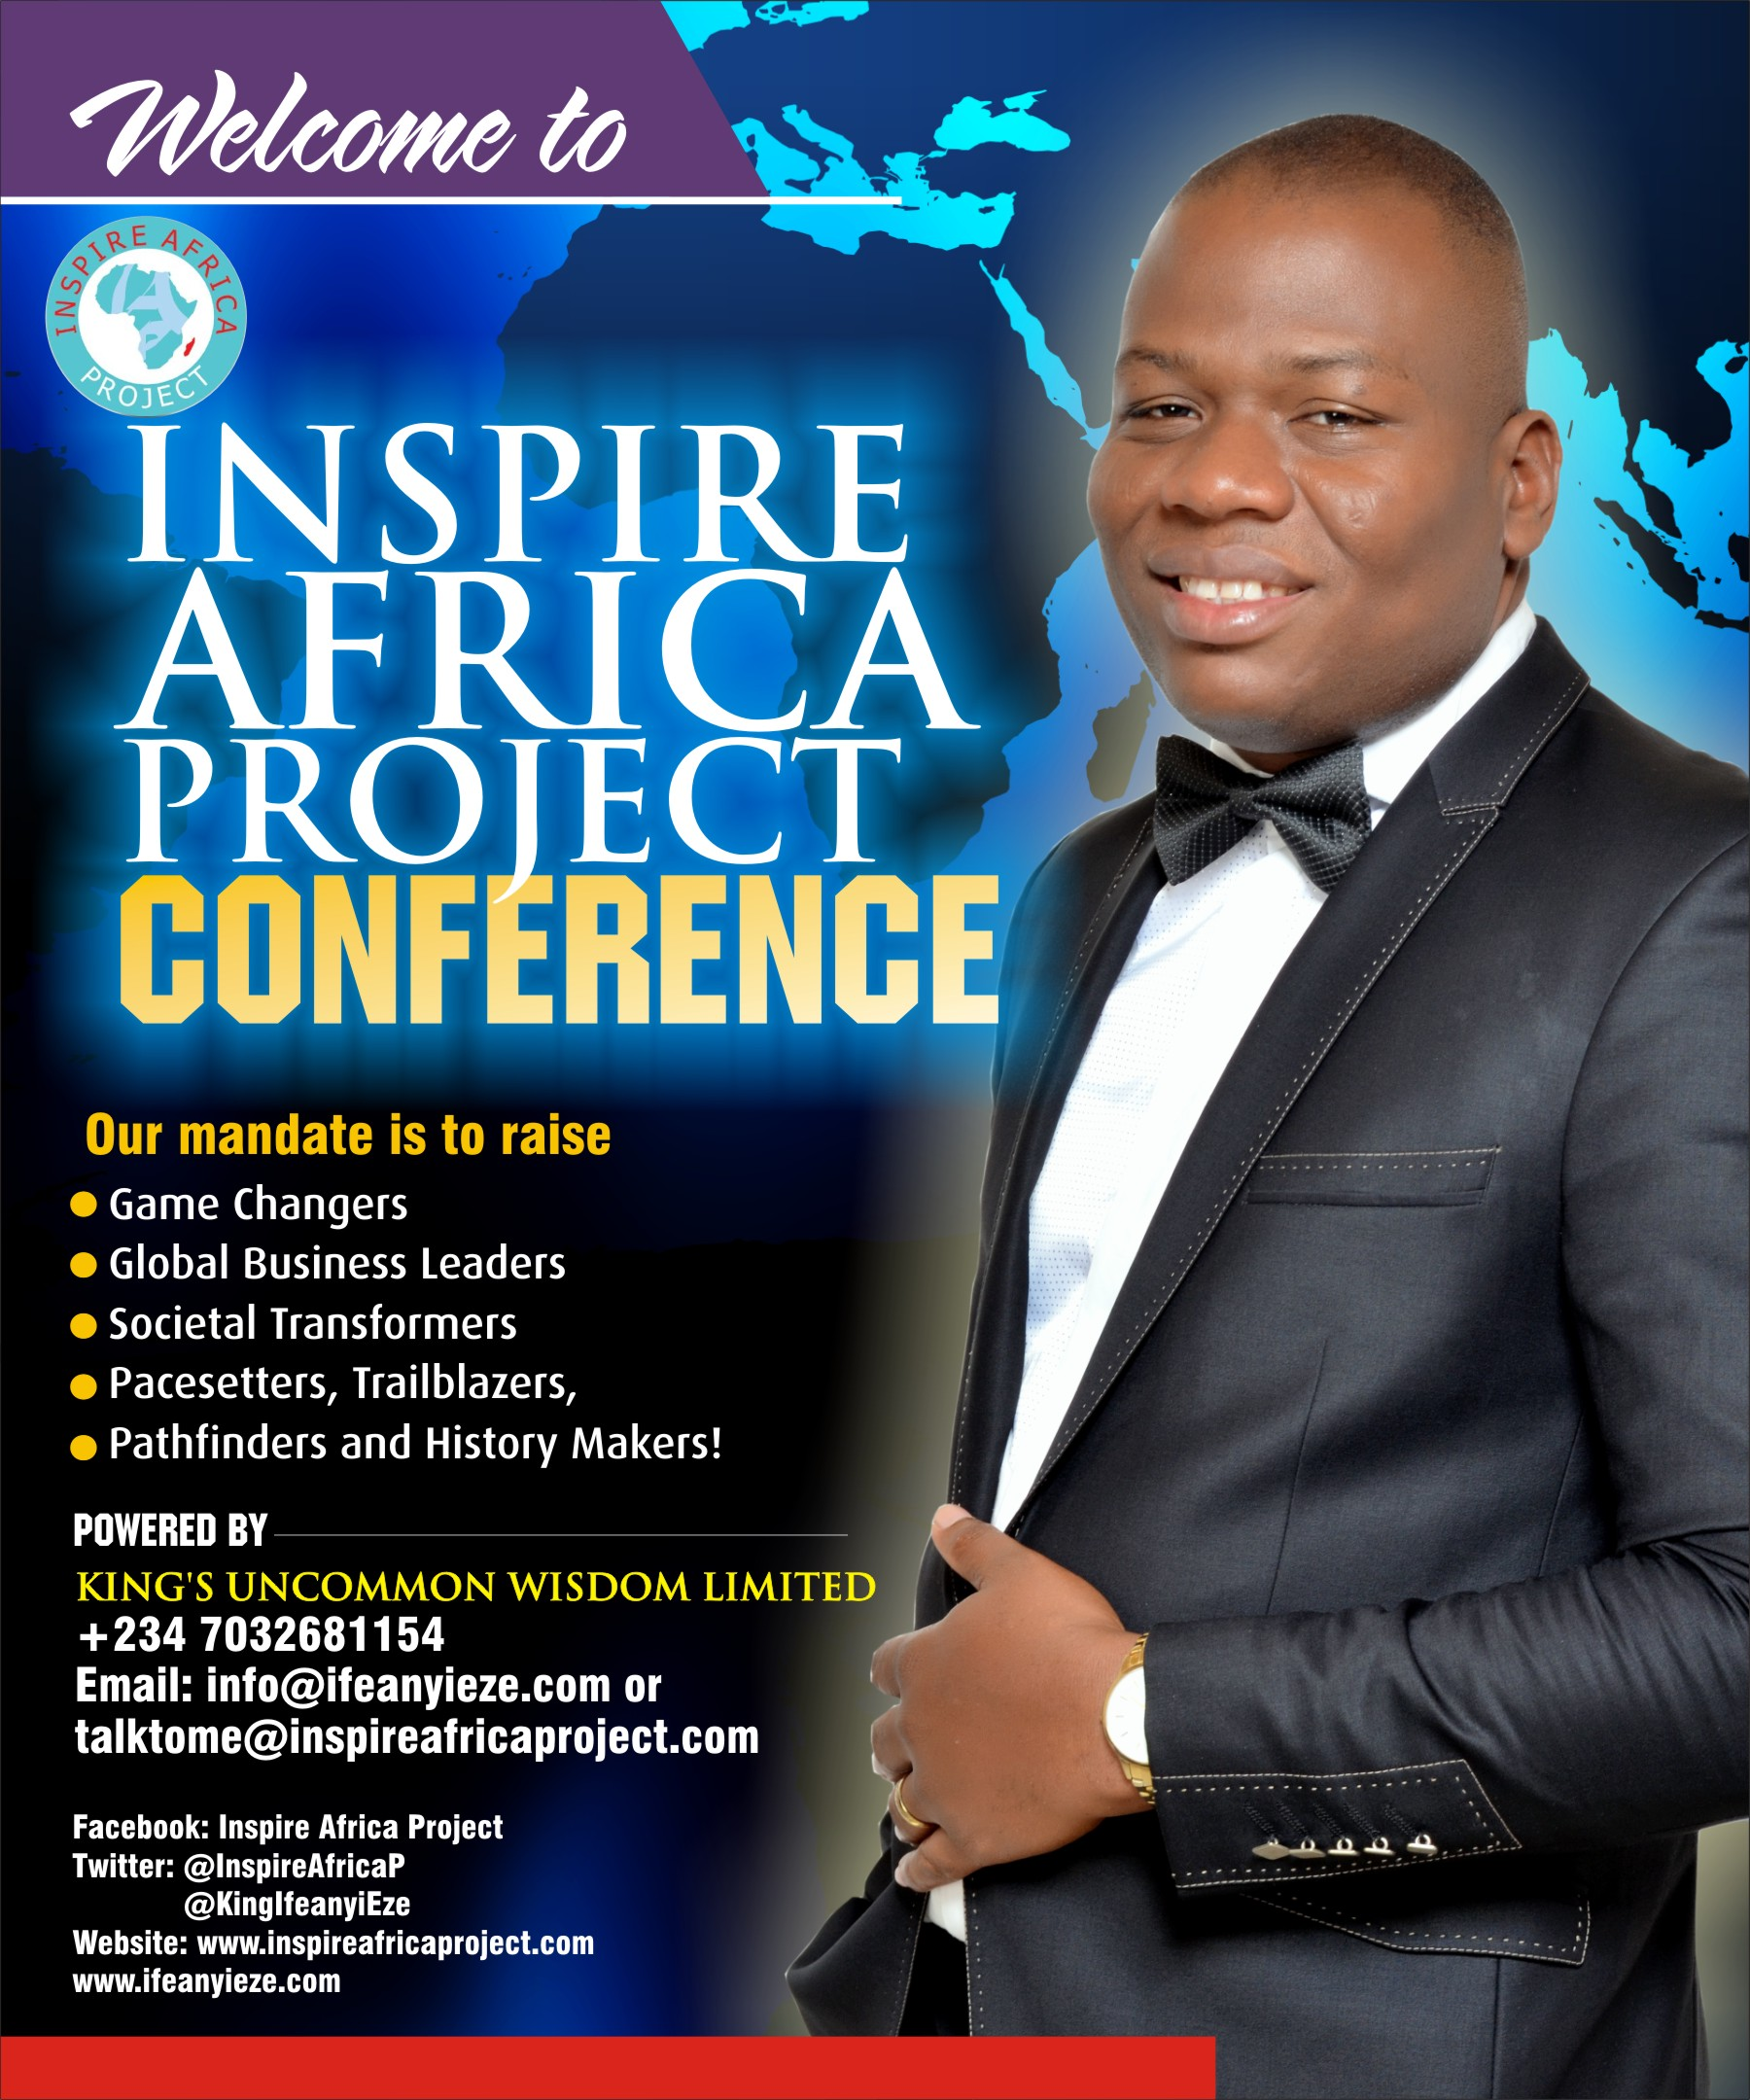 Inspire Africa Project